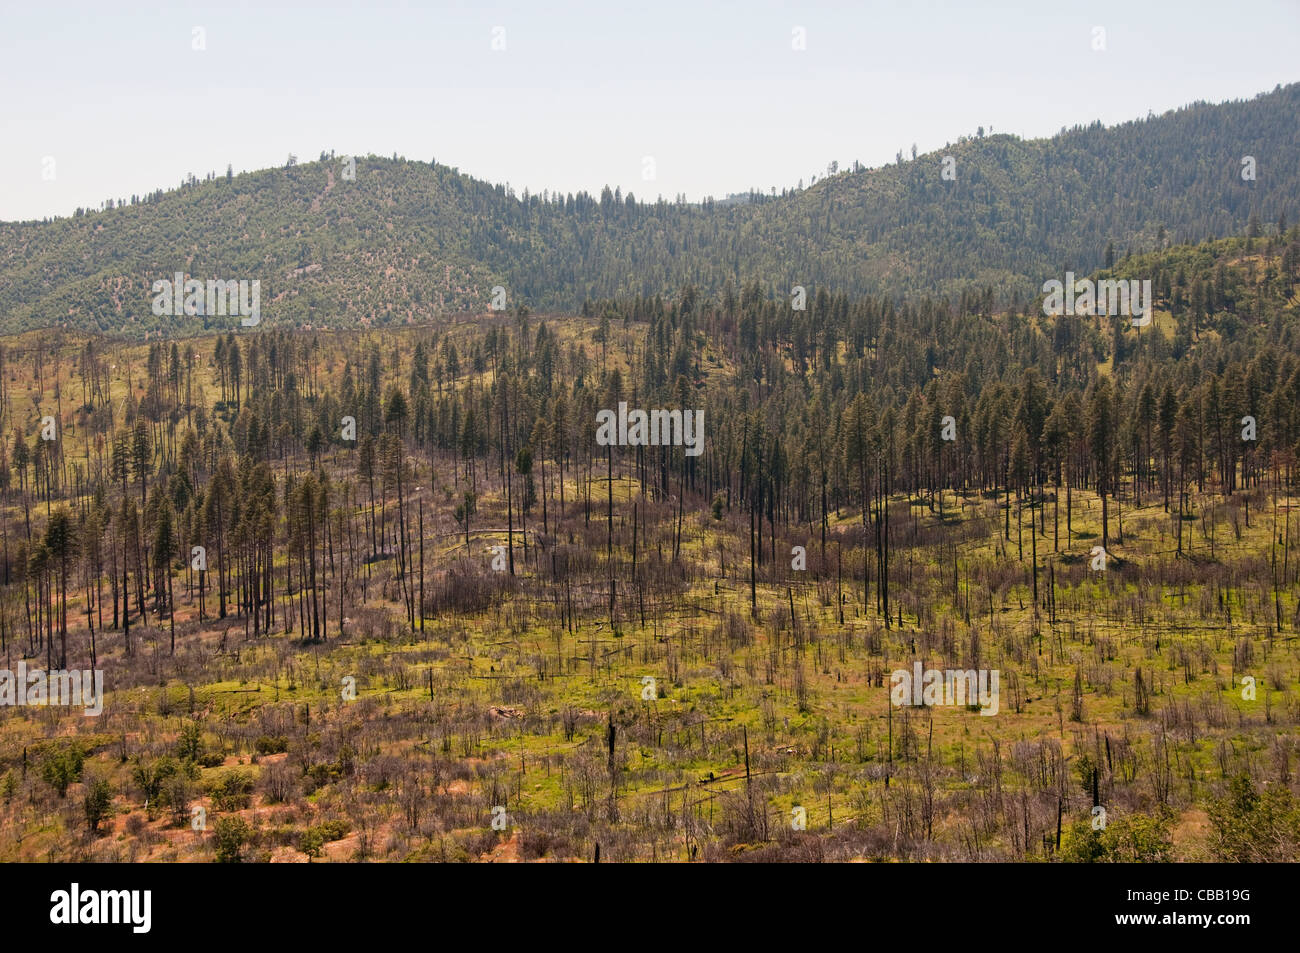 Forest fire at Big Oak Flat, Yosemite National Park, California, USA. Photo copyright Lee Foster. Photo # california120705 - Stock Image